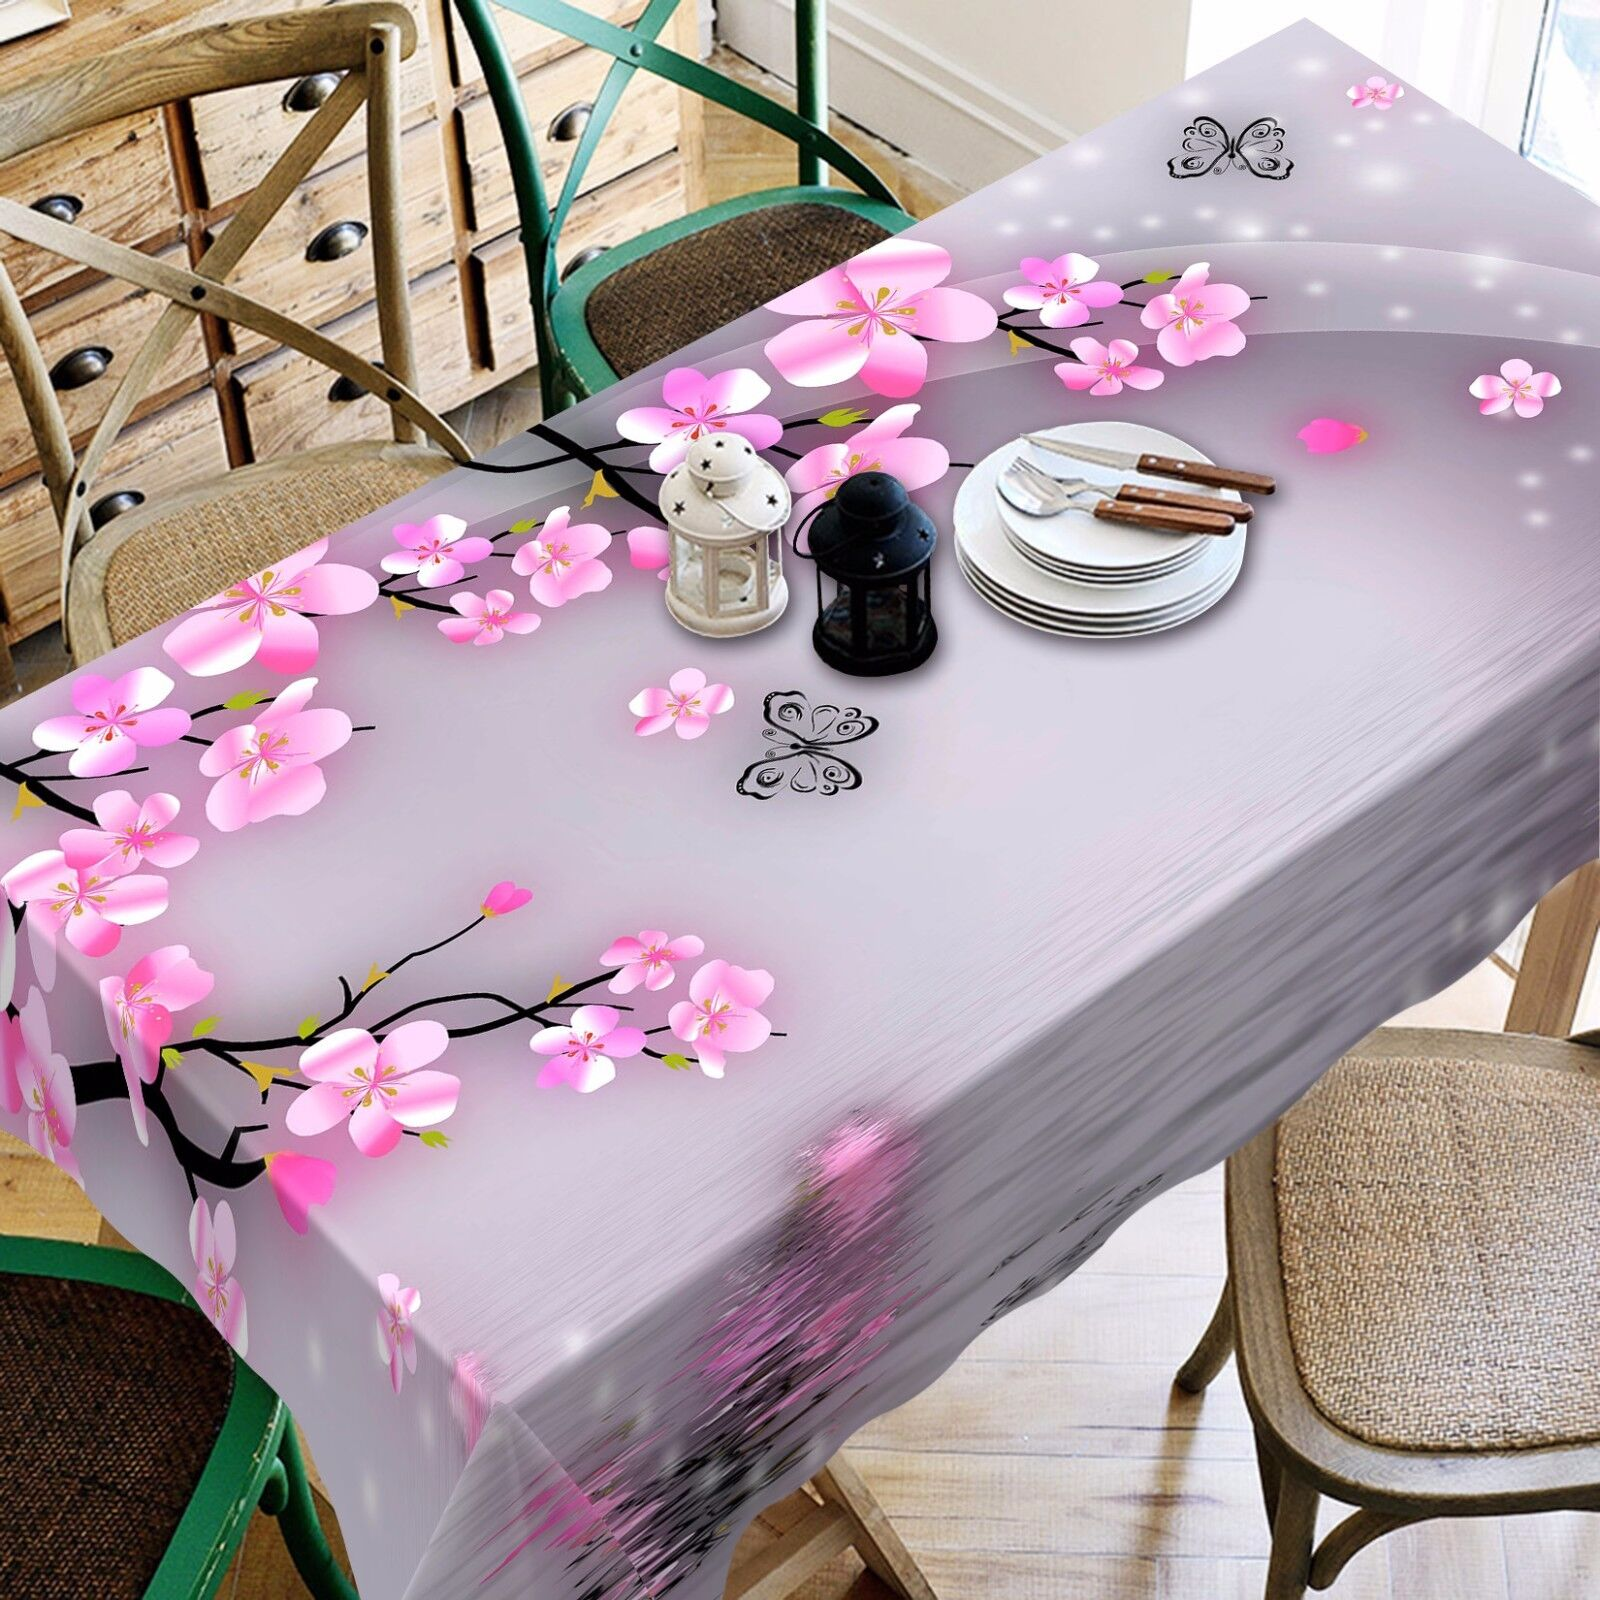 3D Rose Peach 9 Nappe Table Cover Cloth Fête D'Anniversaire événement AJ papier peint UK